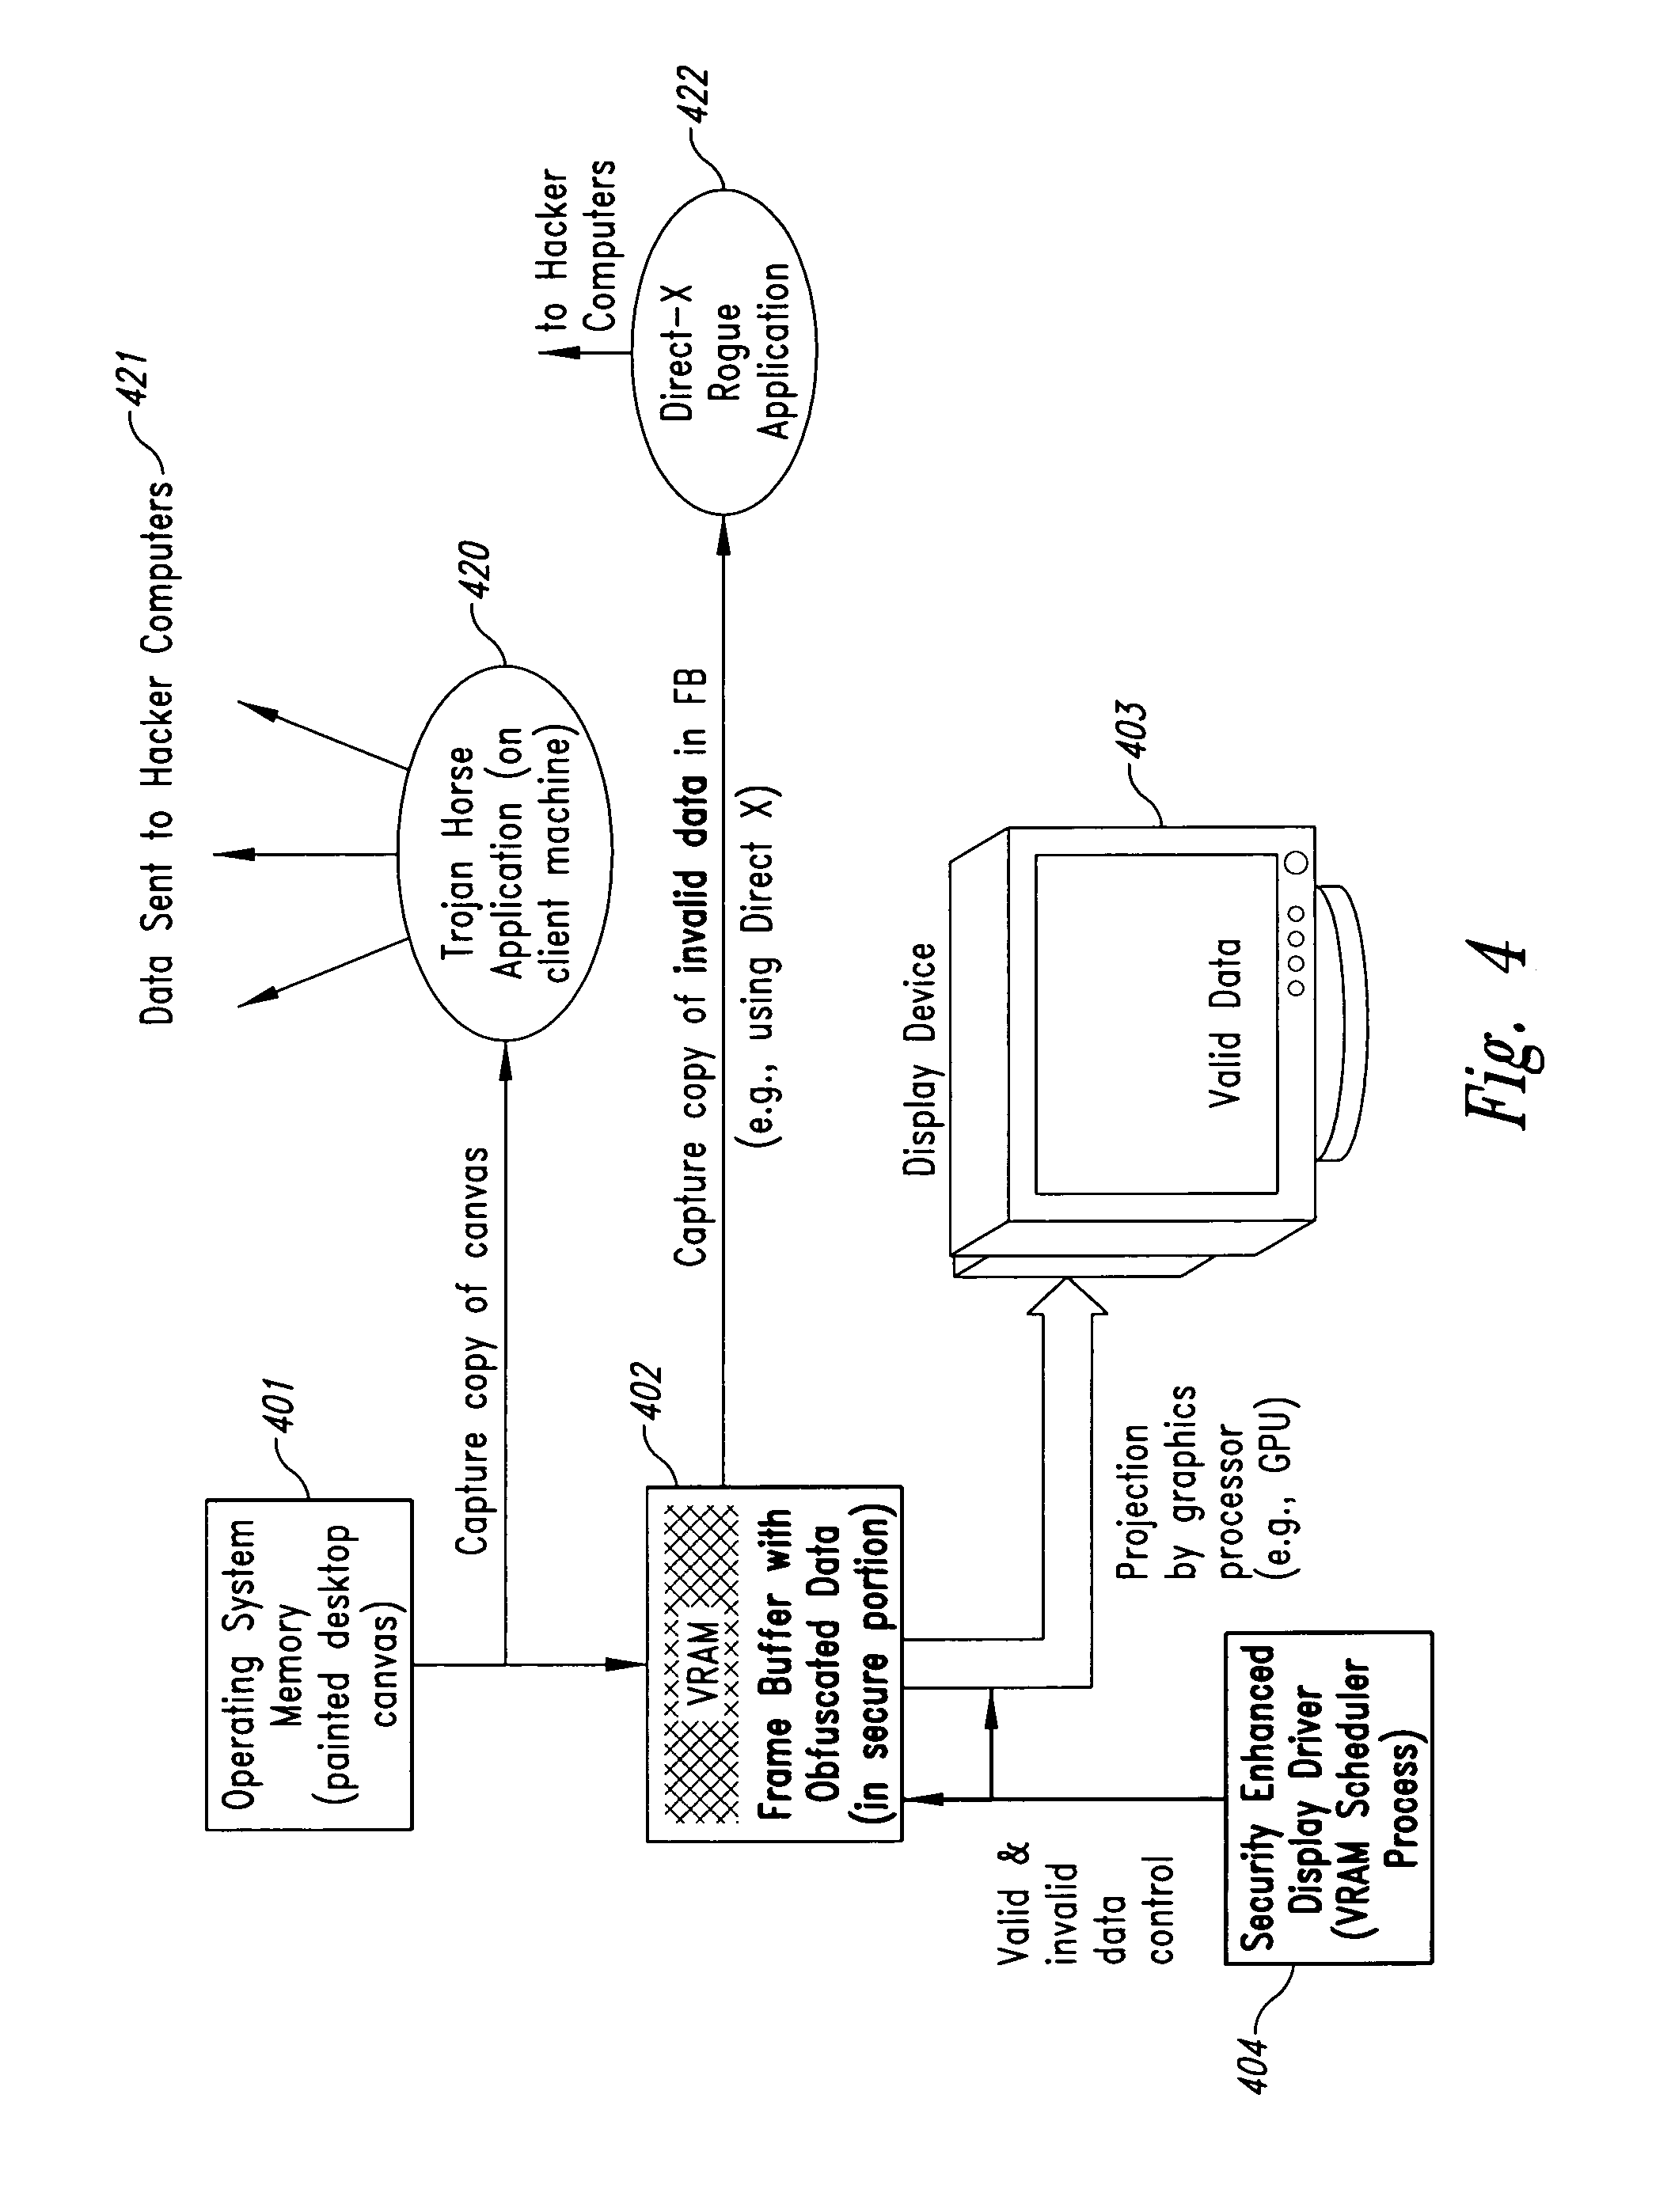 method and system for maintaining secure data input and output